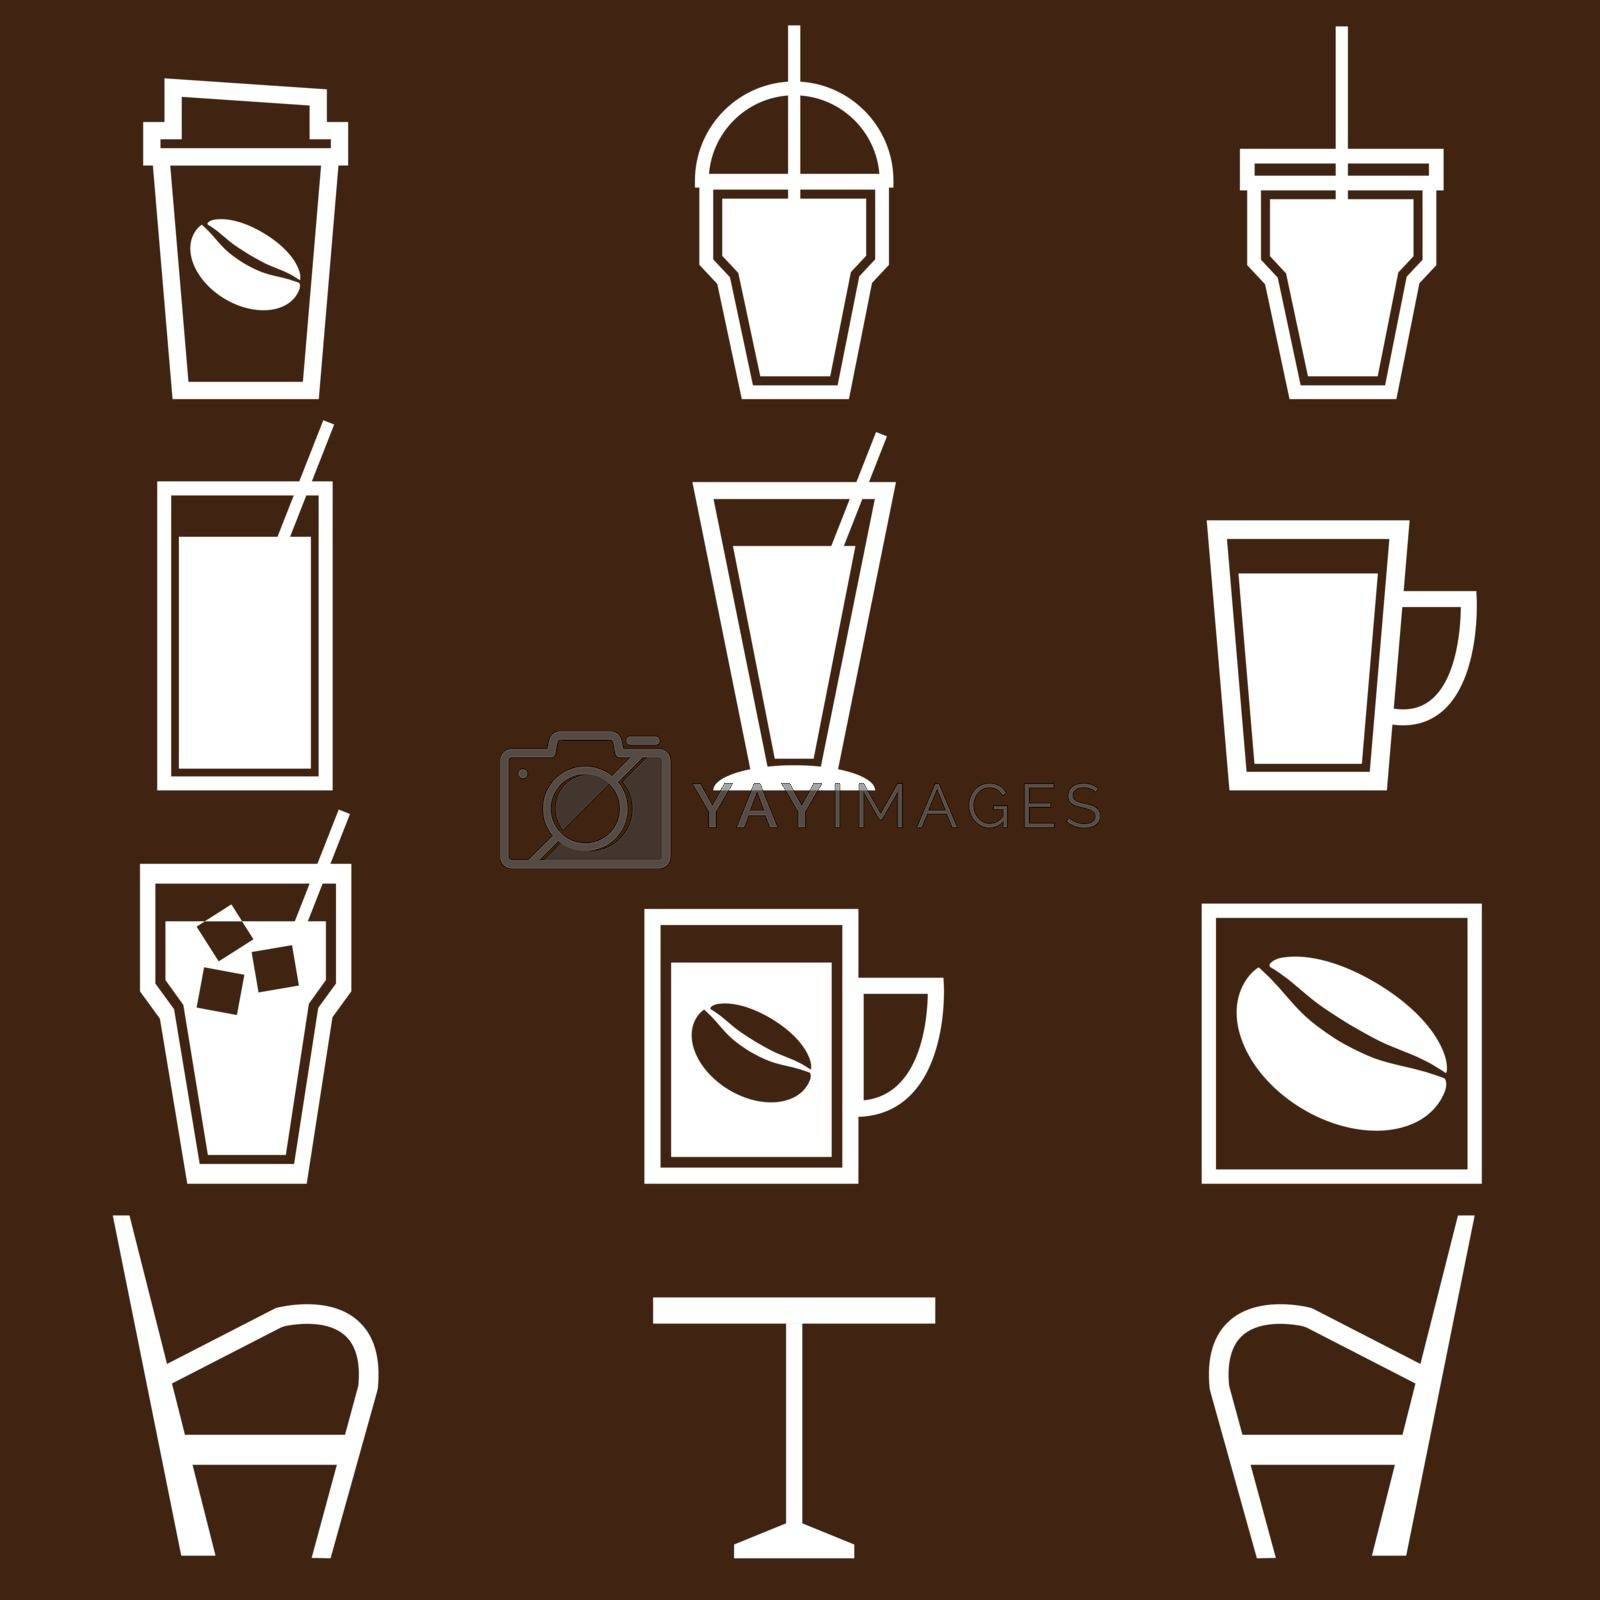 Coffee drinks icons in coffee shop, stock vector